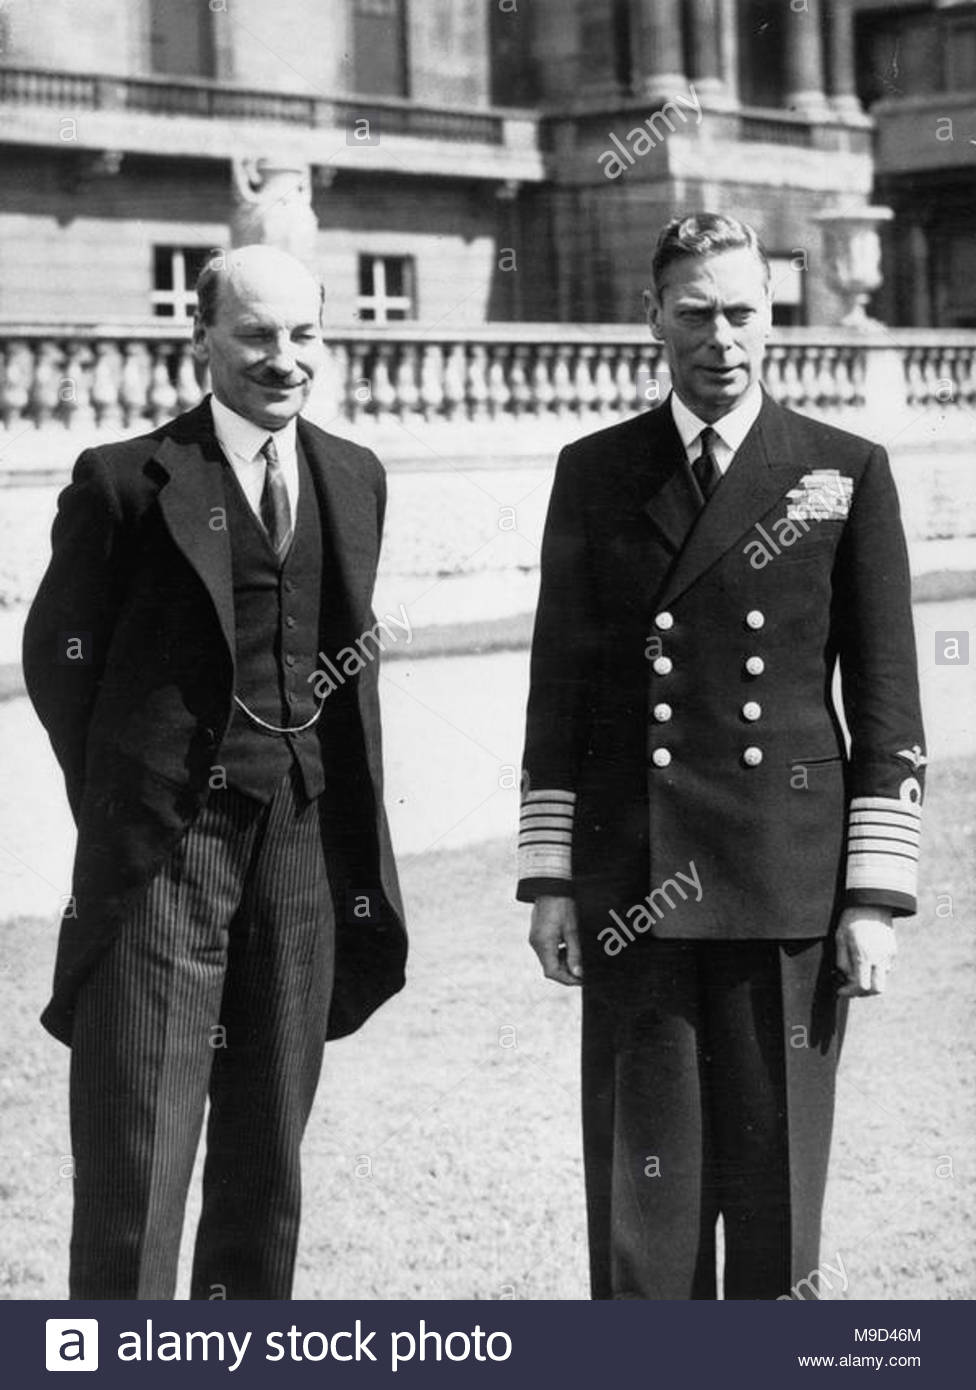 British Political Personalities 1936-1945 The 1945 General Election: King George VI standing with the Labour Prime Minister, Clement Attlee, in the grounds of Buckingham Palace, London. - Stock Image